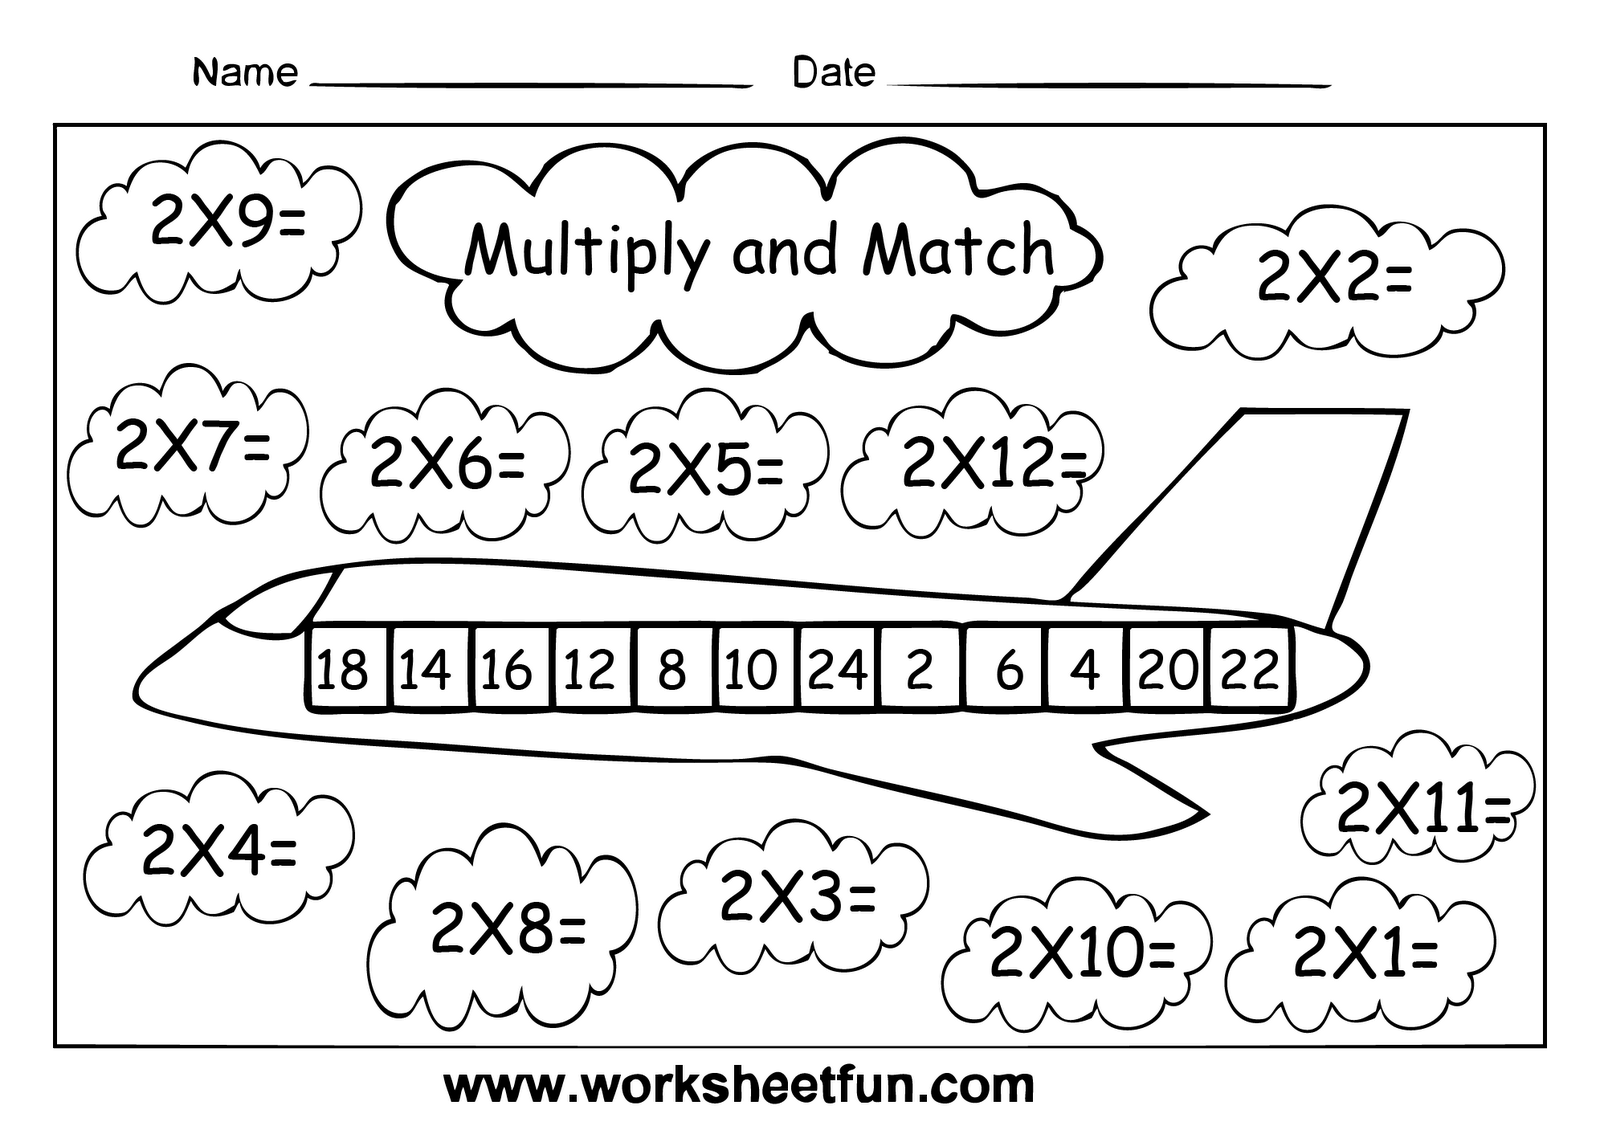 Times tables homework sheets